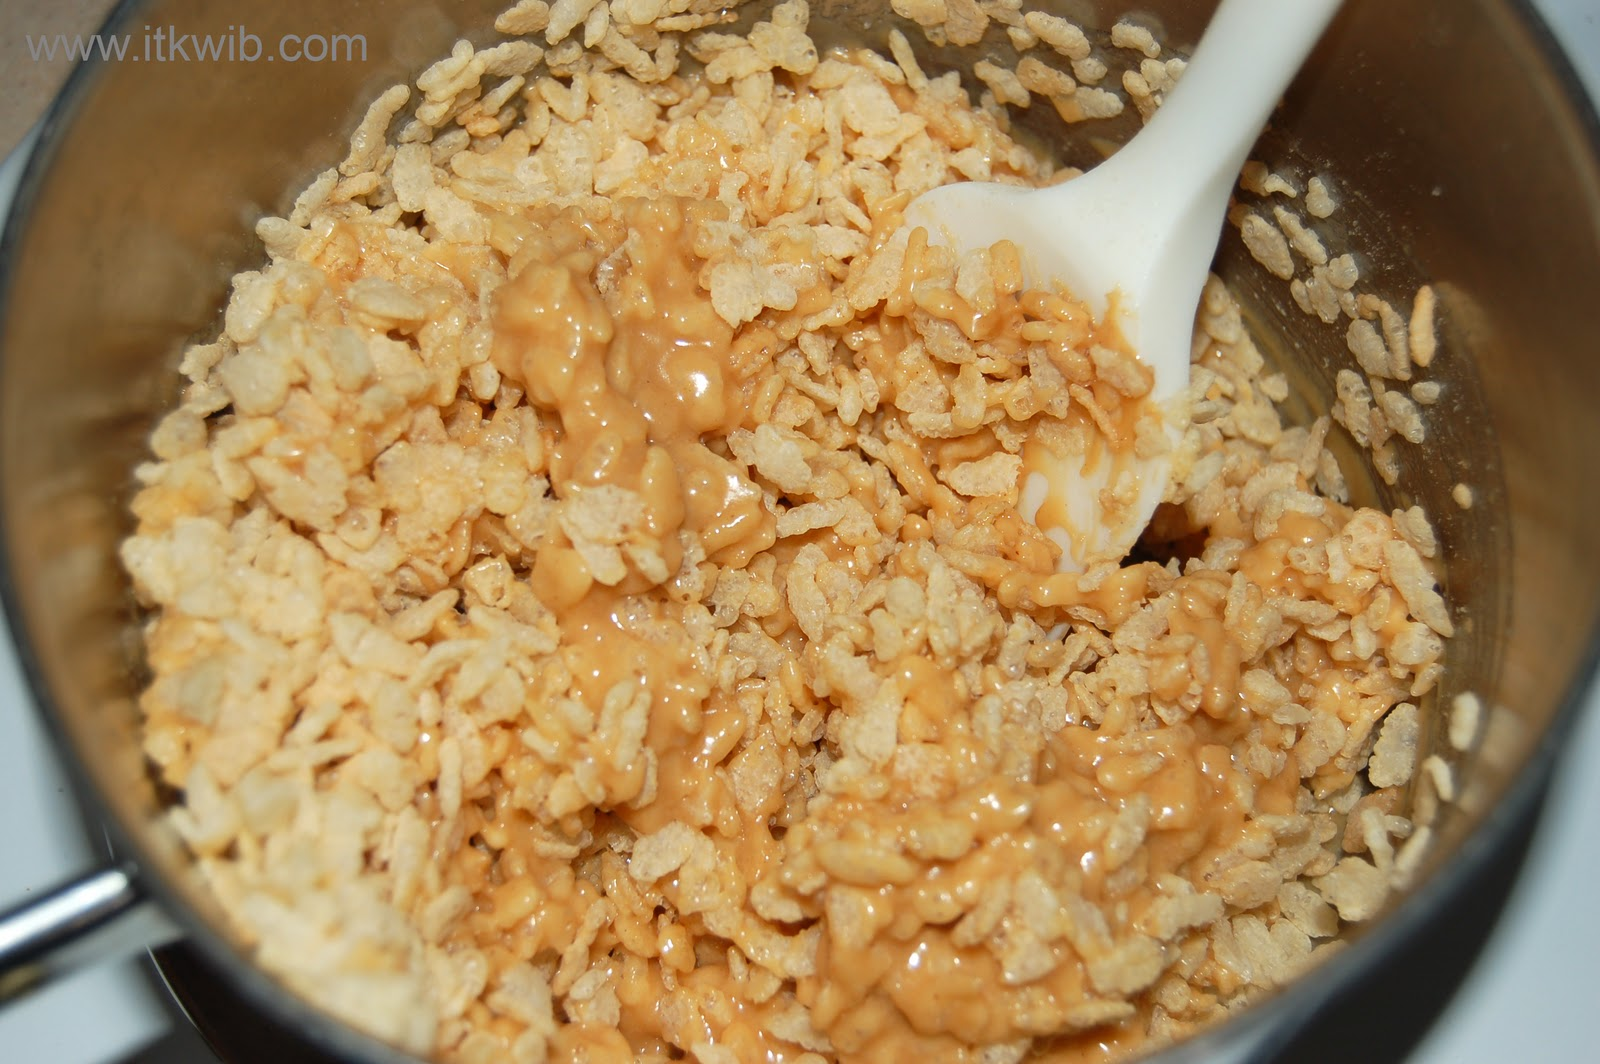 Peanut Butter Rice Krispies | In The Kitchen Where I Belong